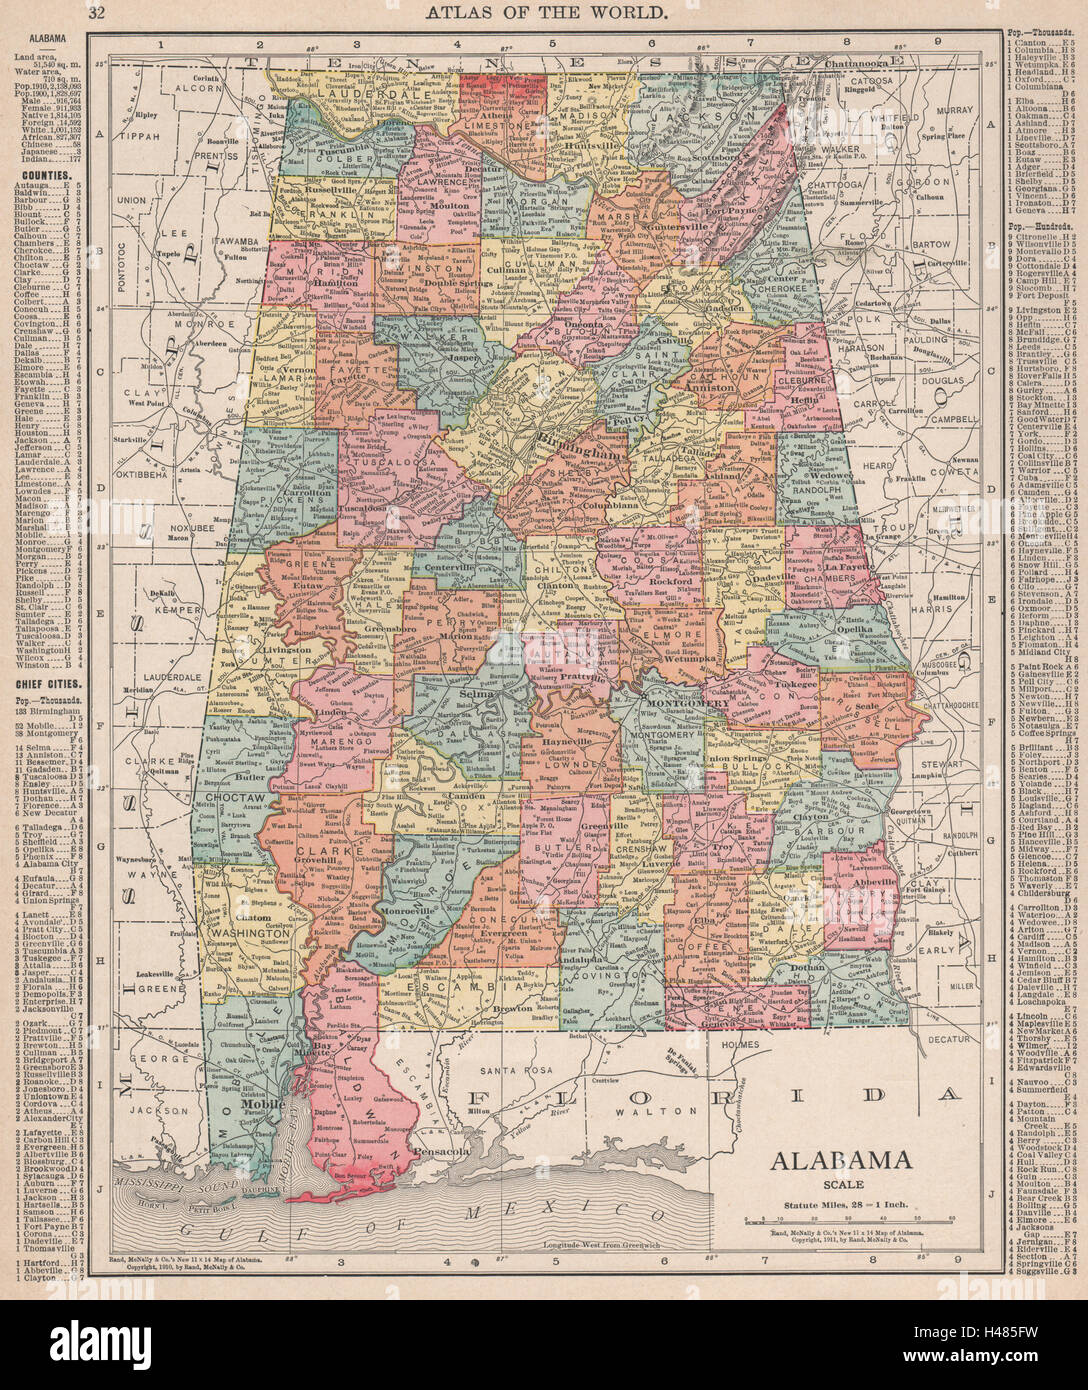 Alabama state map showing counties. RAND MCNALLY 1912 old antique ...